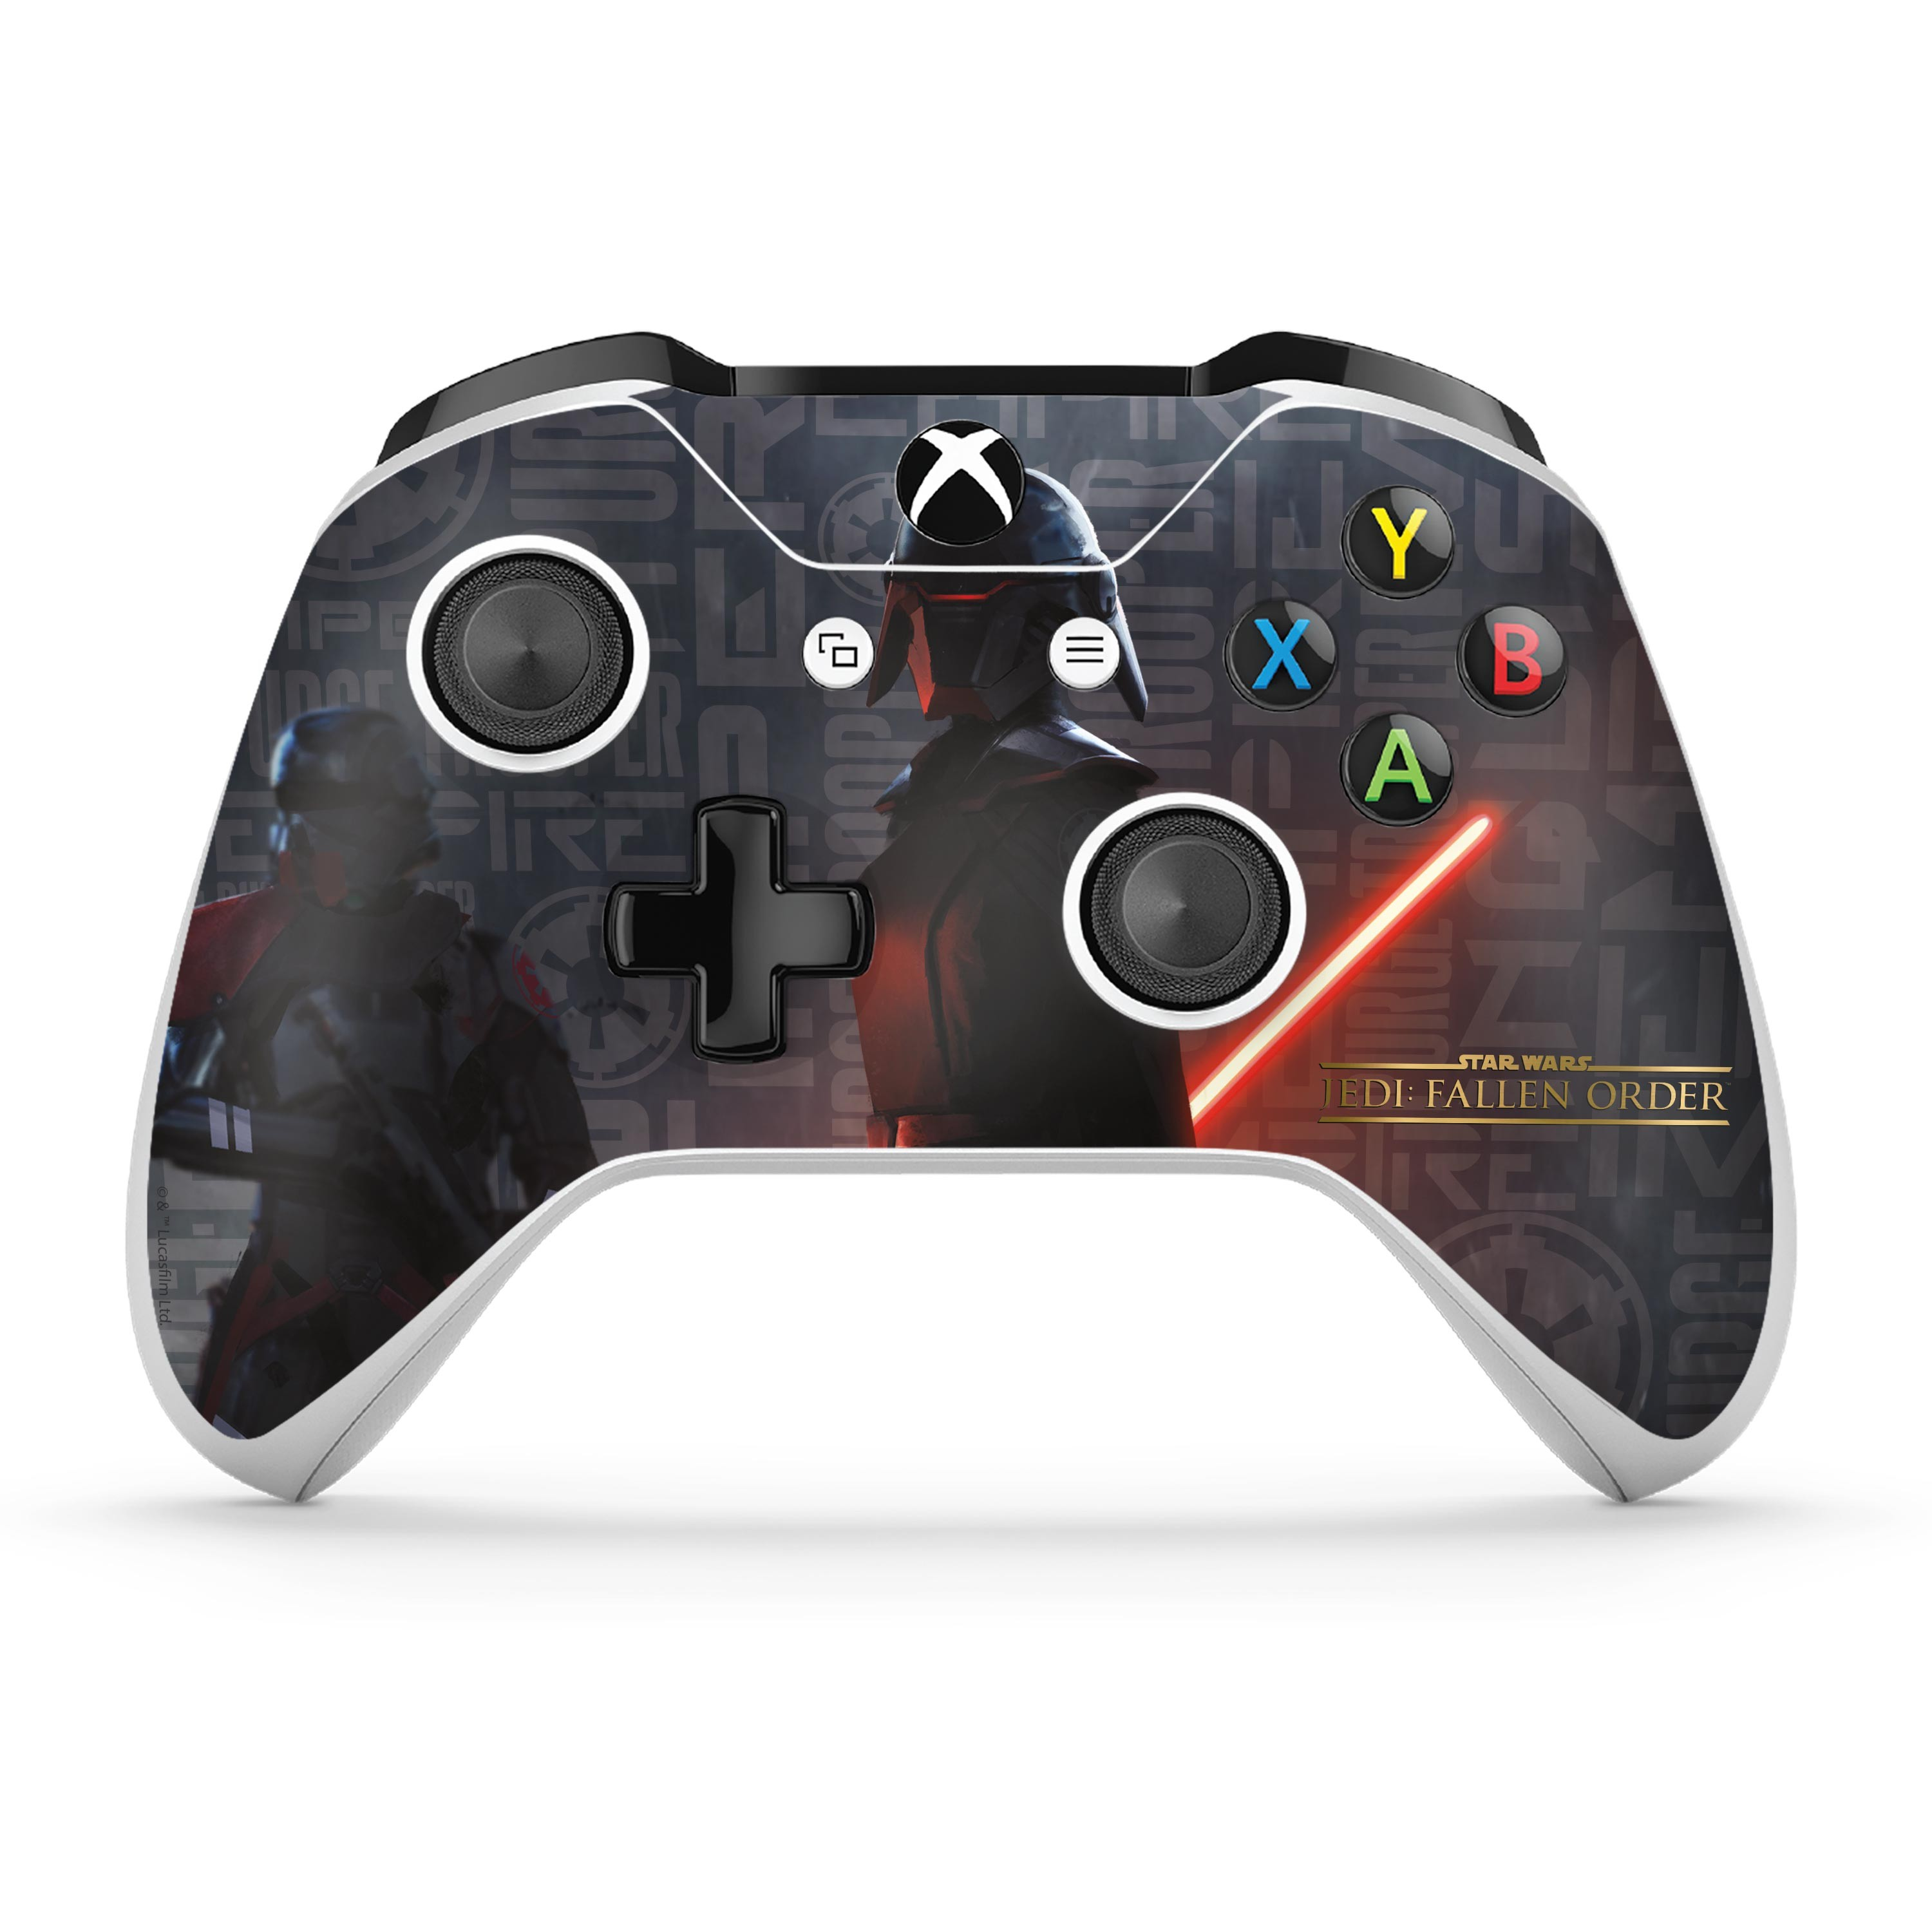 Star Wars Jedi: Fallen Order – Empire Scatter Xbox One S Console and Controller Skin